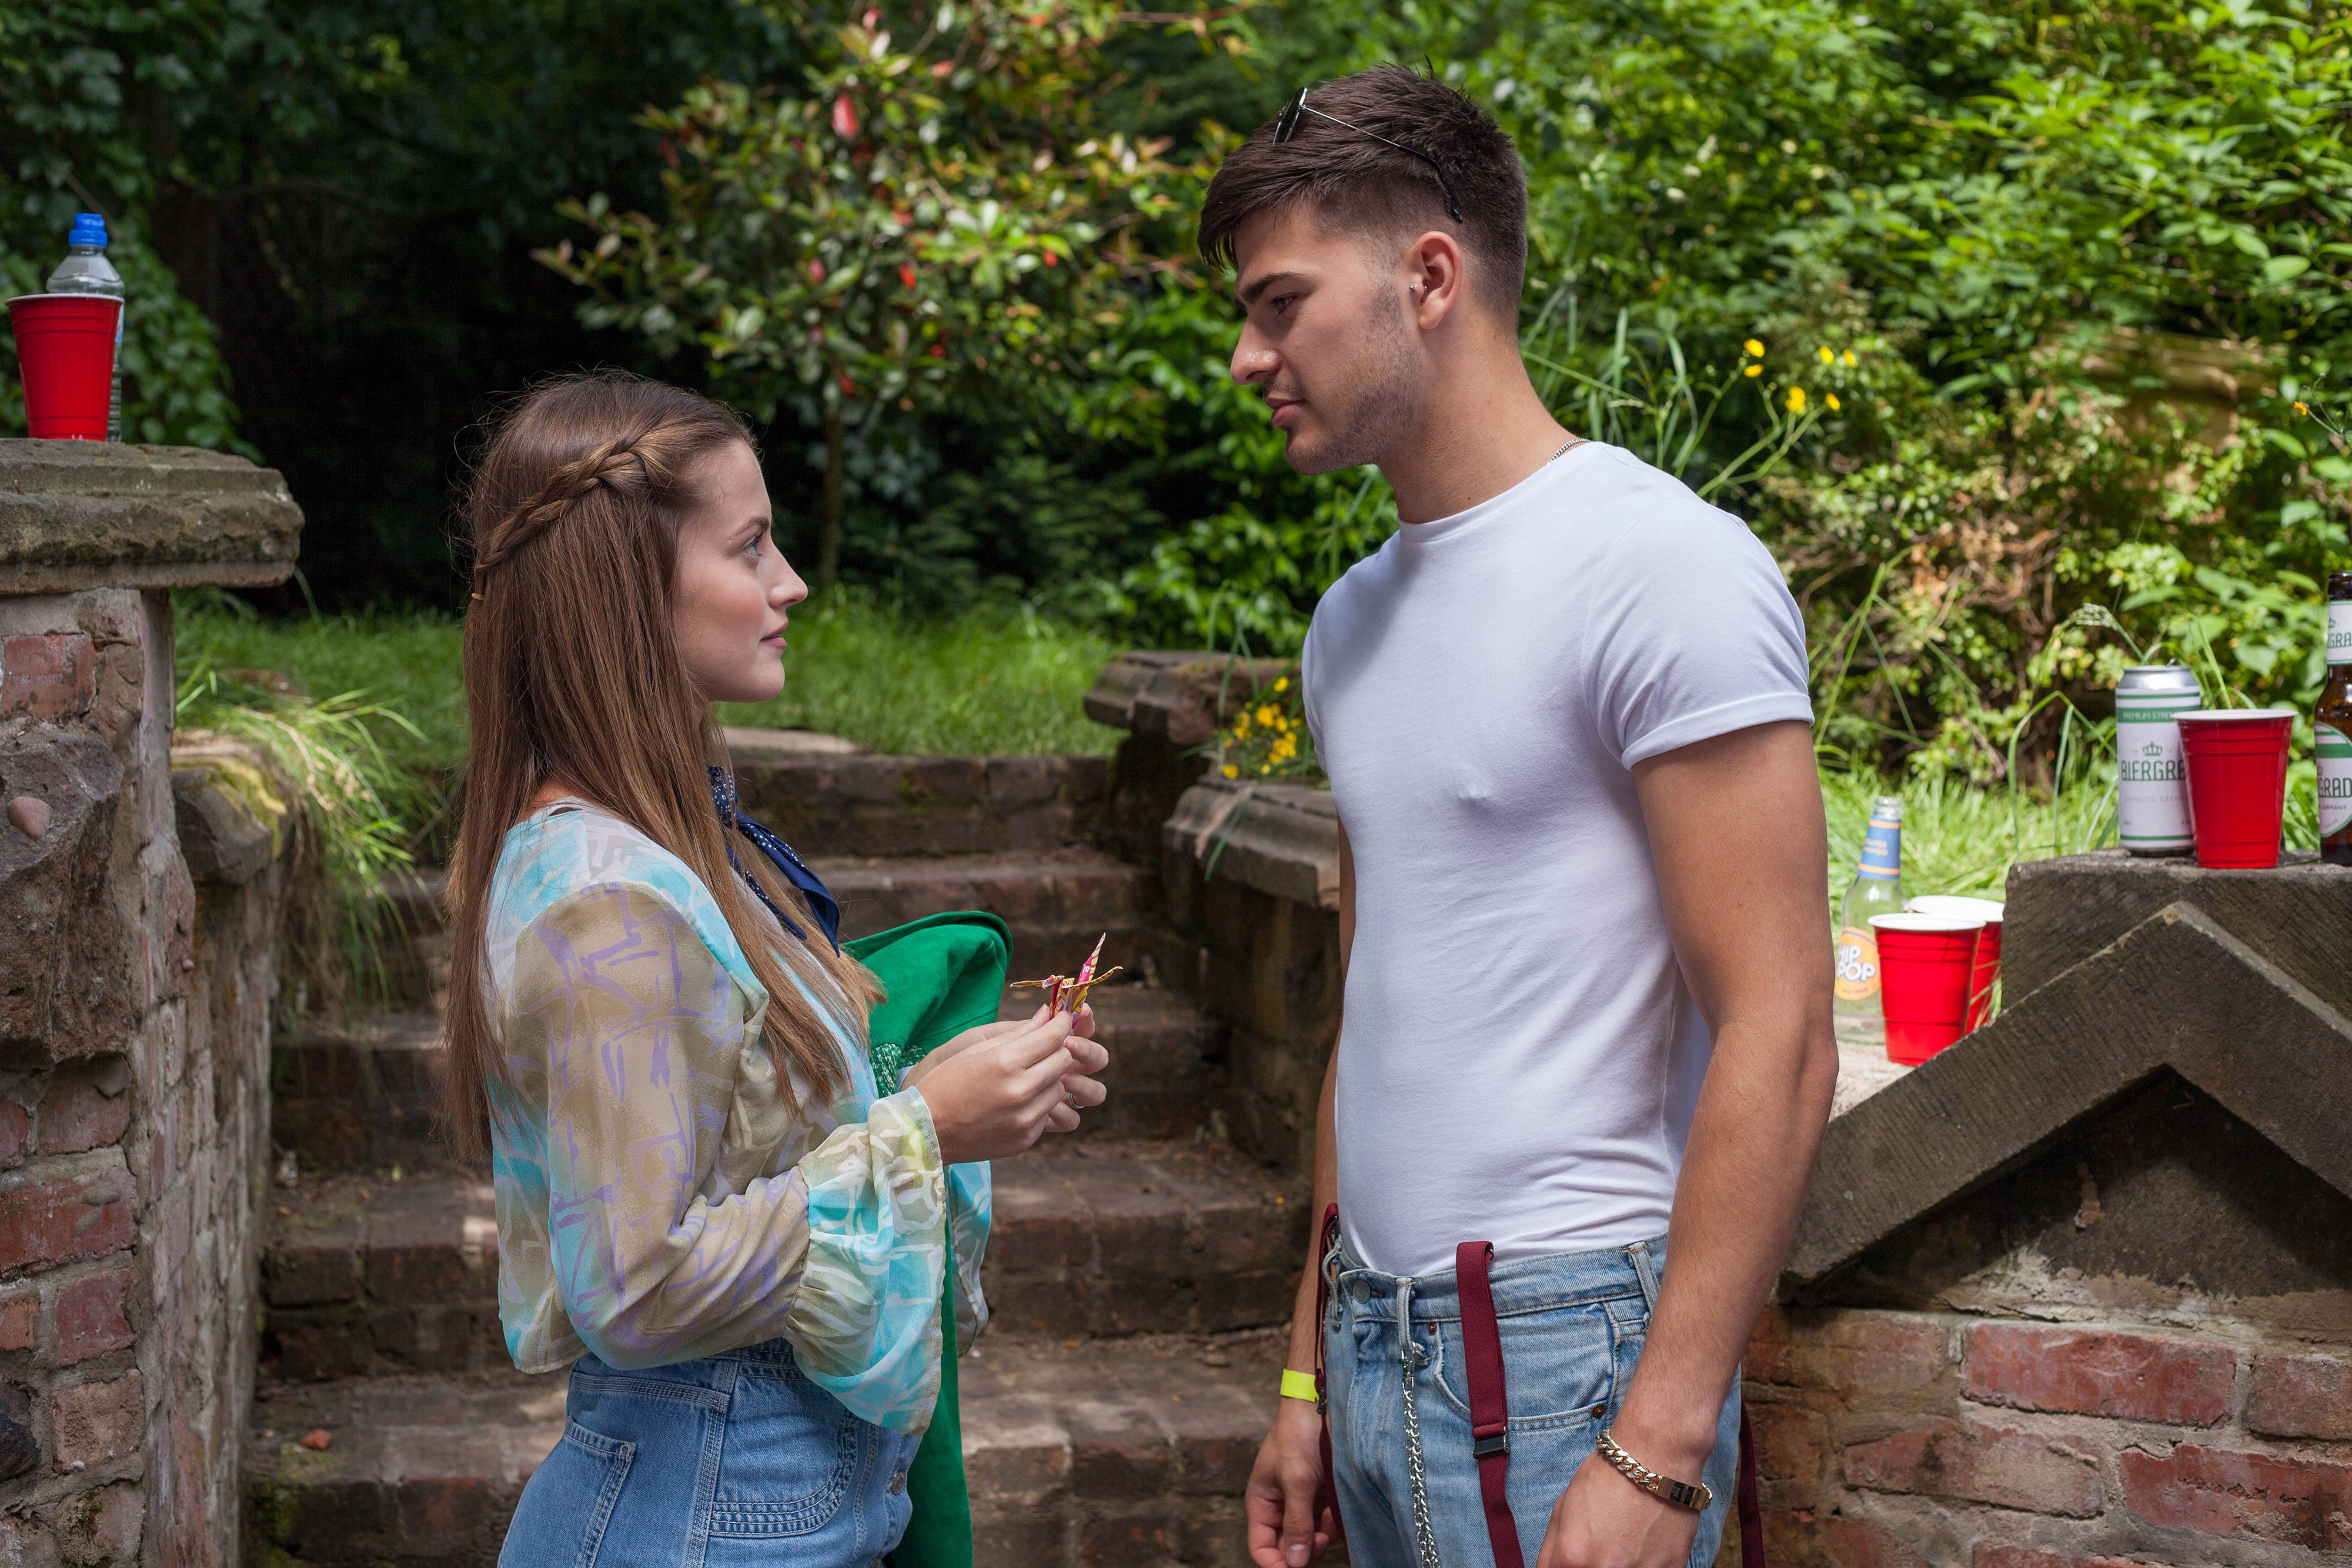 Hollyoaks spoilers: Lily McQueen to run away with Romeo Quinn after dumping Prince?